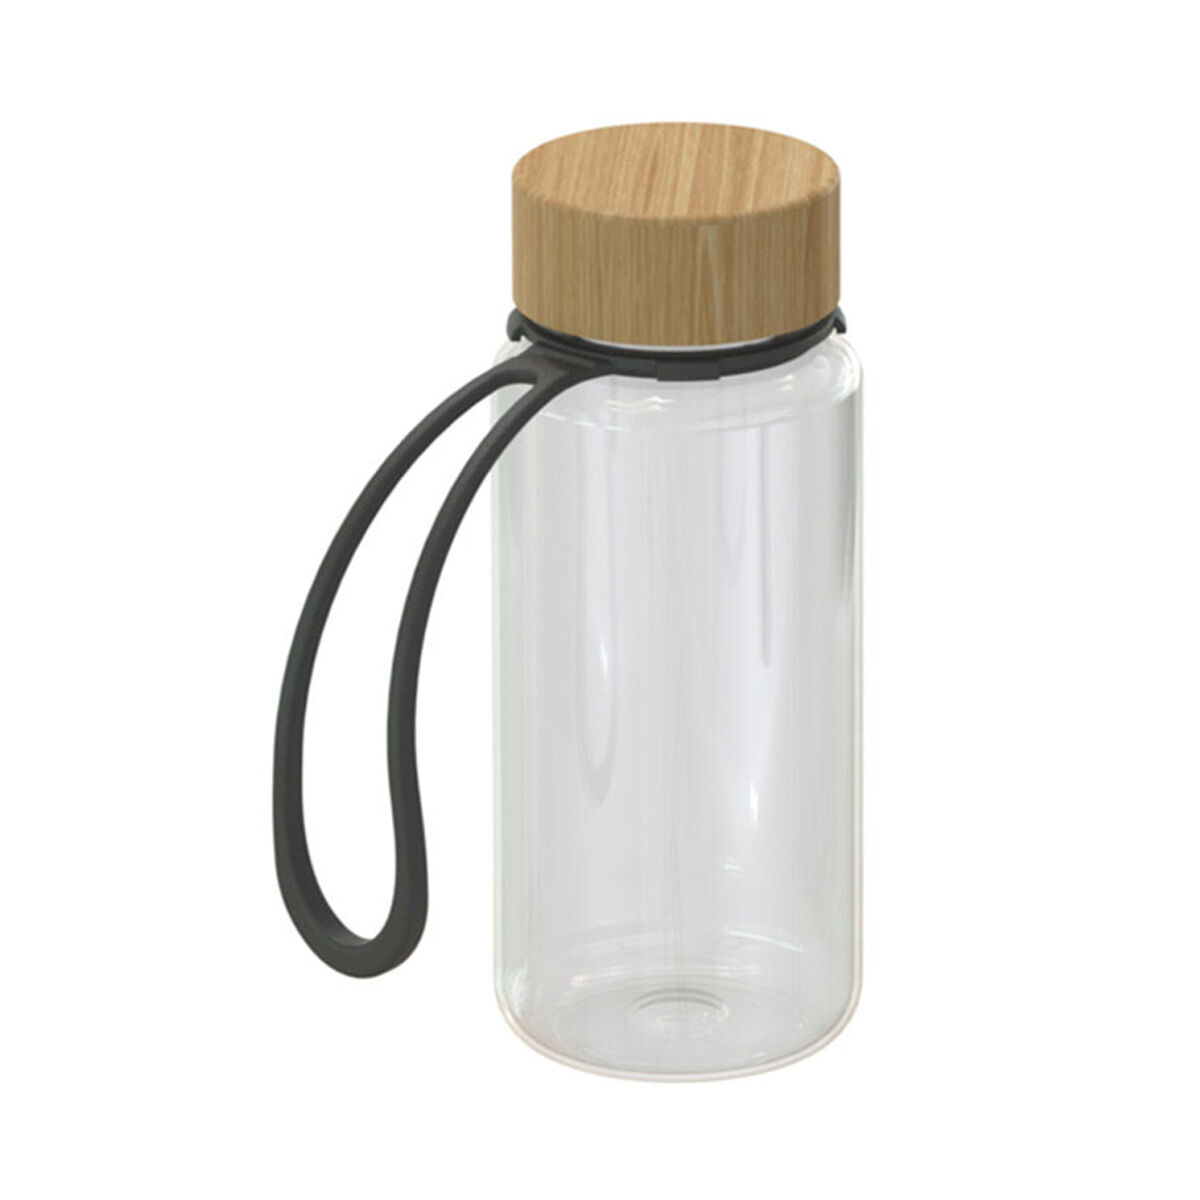 Bamboo lid bottle with silicone carry strap